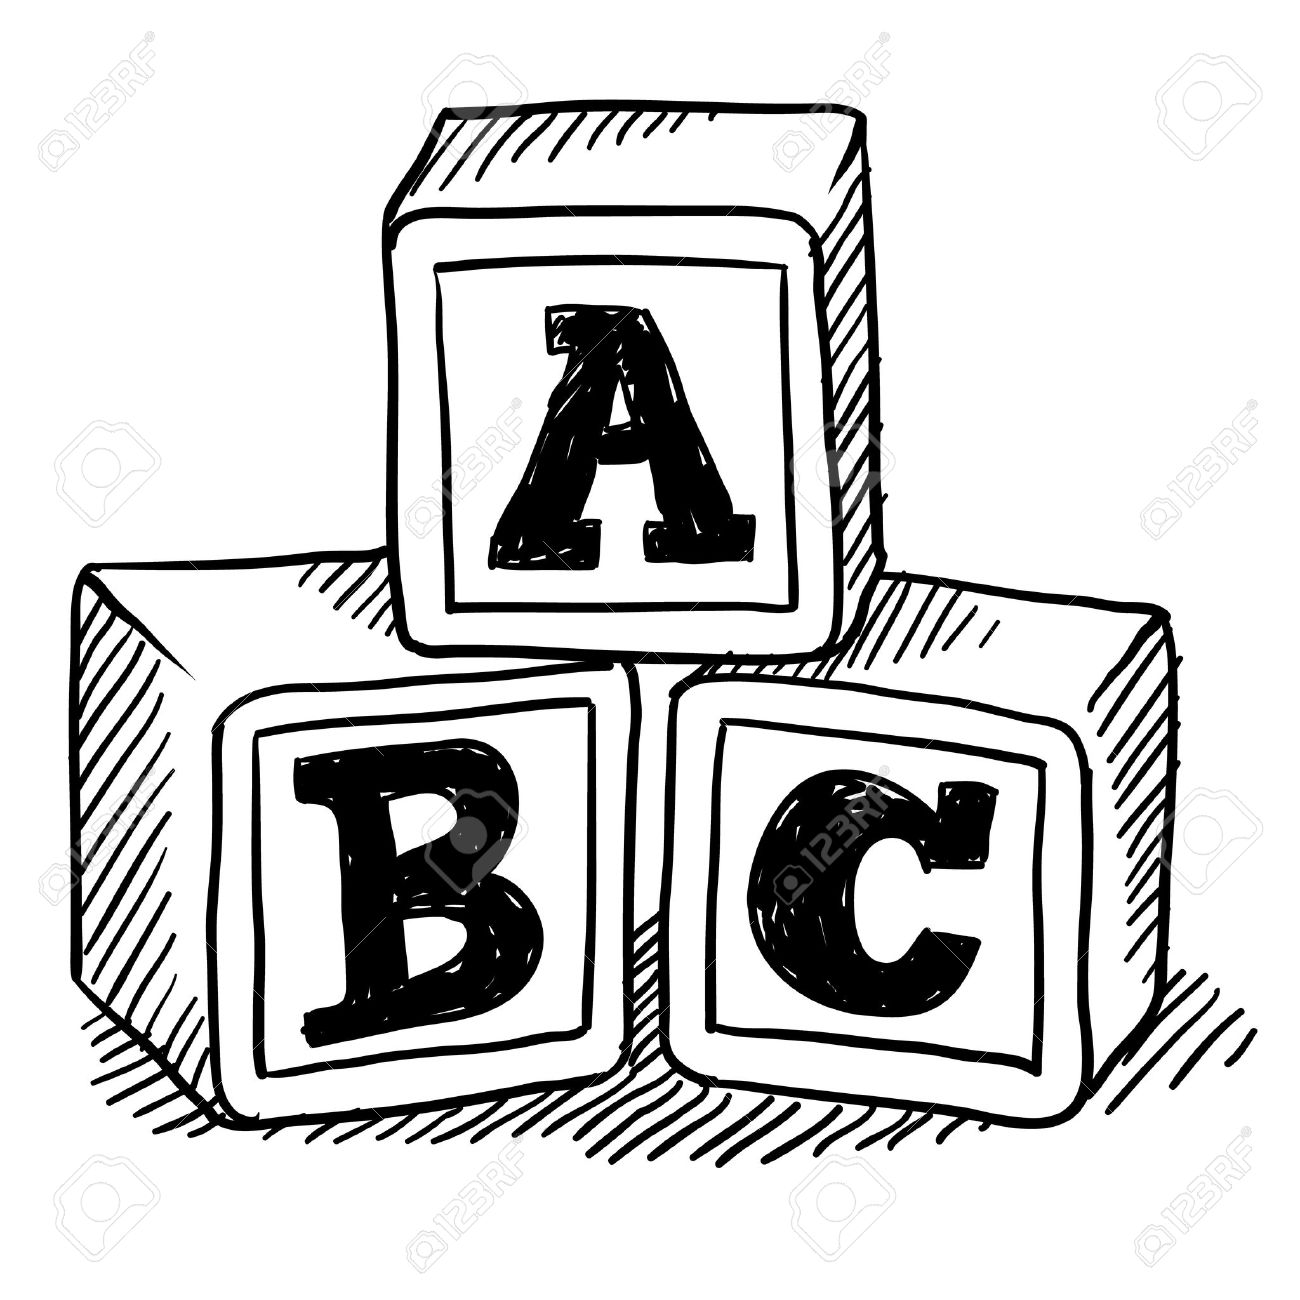 Abc building blocks clipart - .-Abc building blocks clipart - .-15